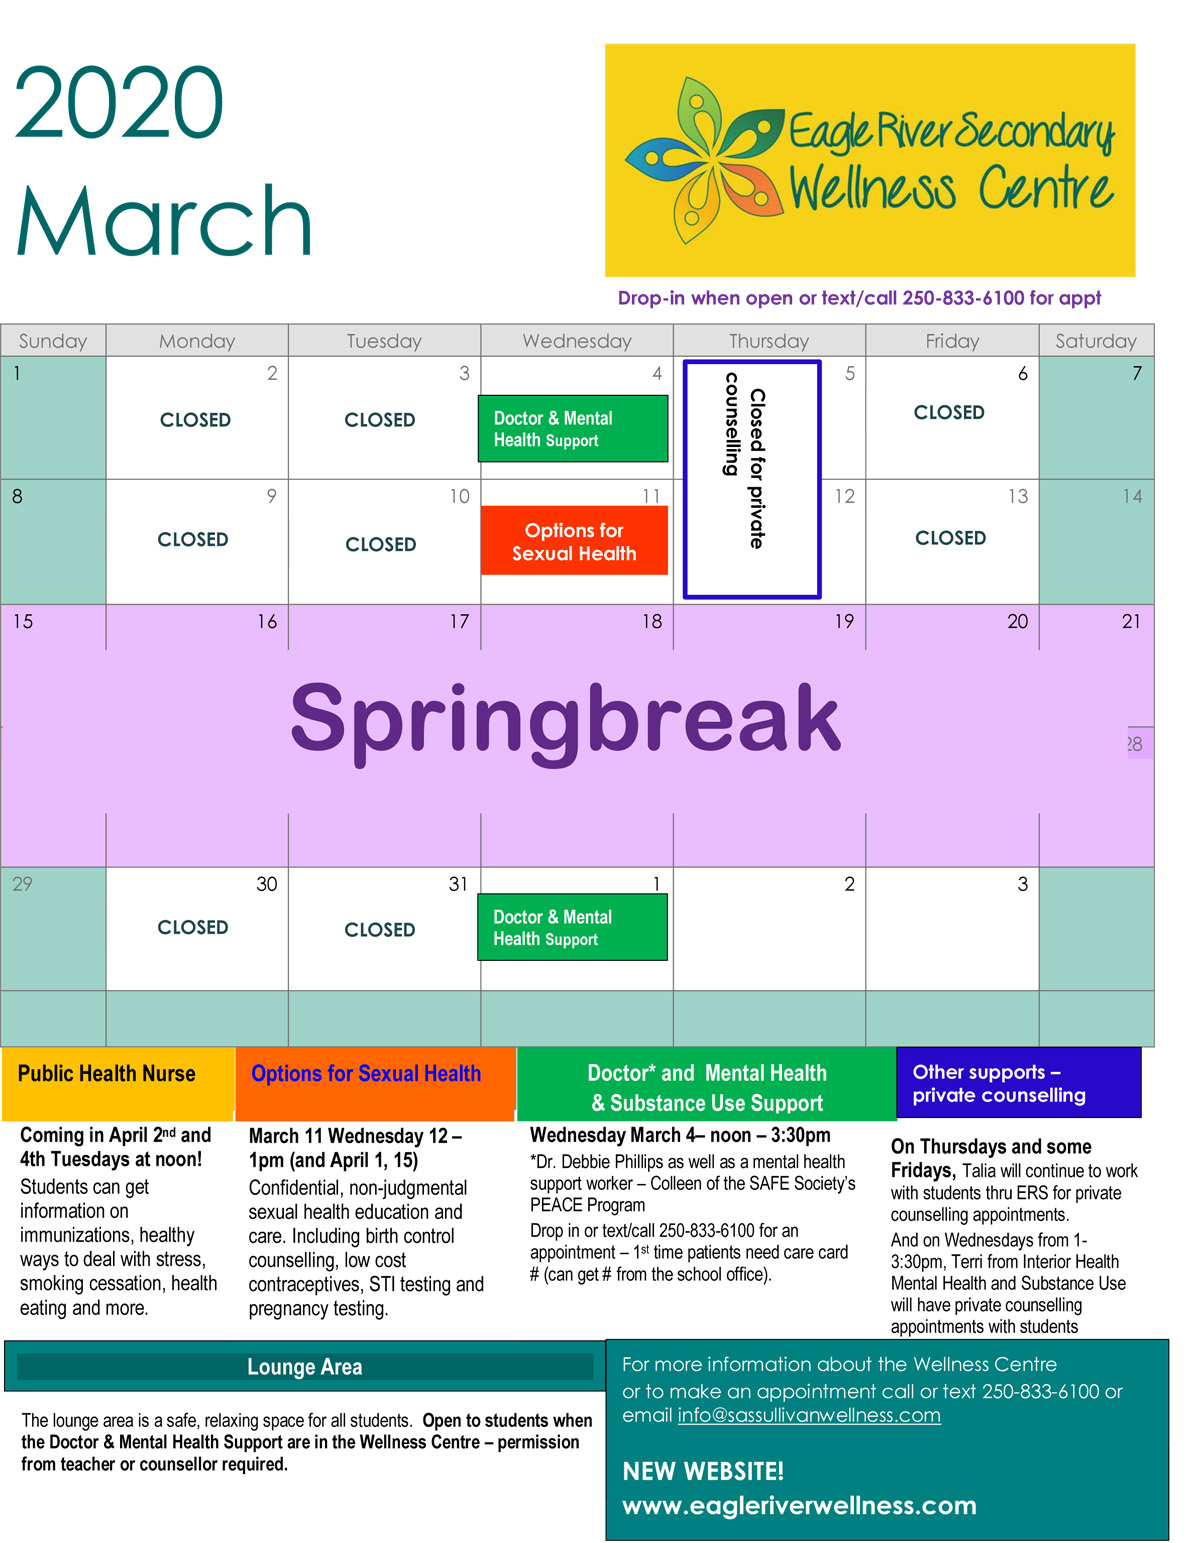 March 2020 ERS Wellness Centre Calendar